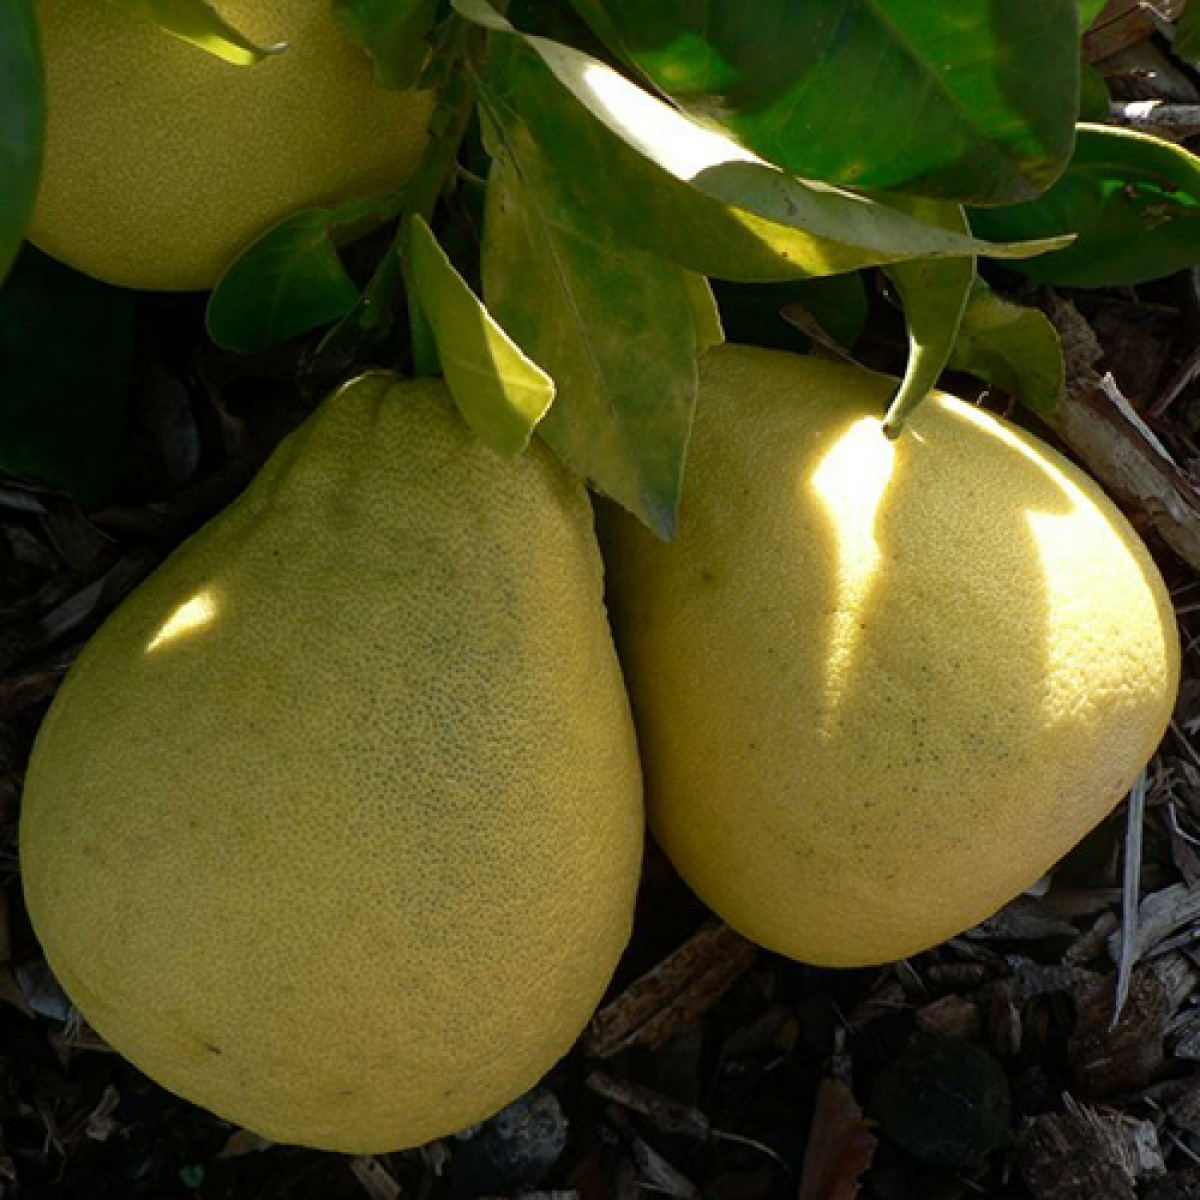 lemoncitrustrees grapefruit trees, Natural flower